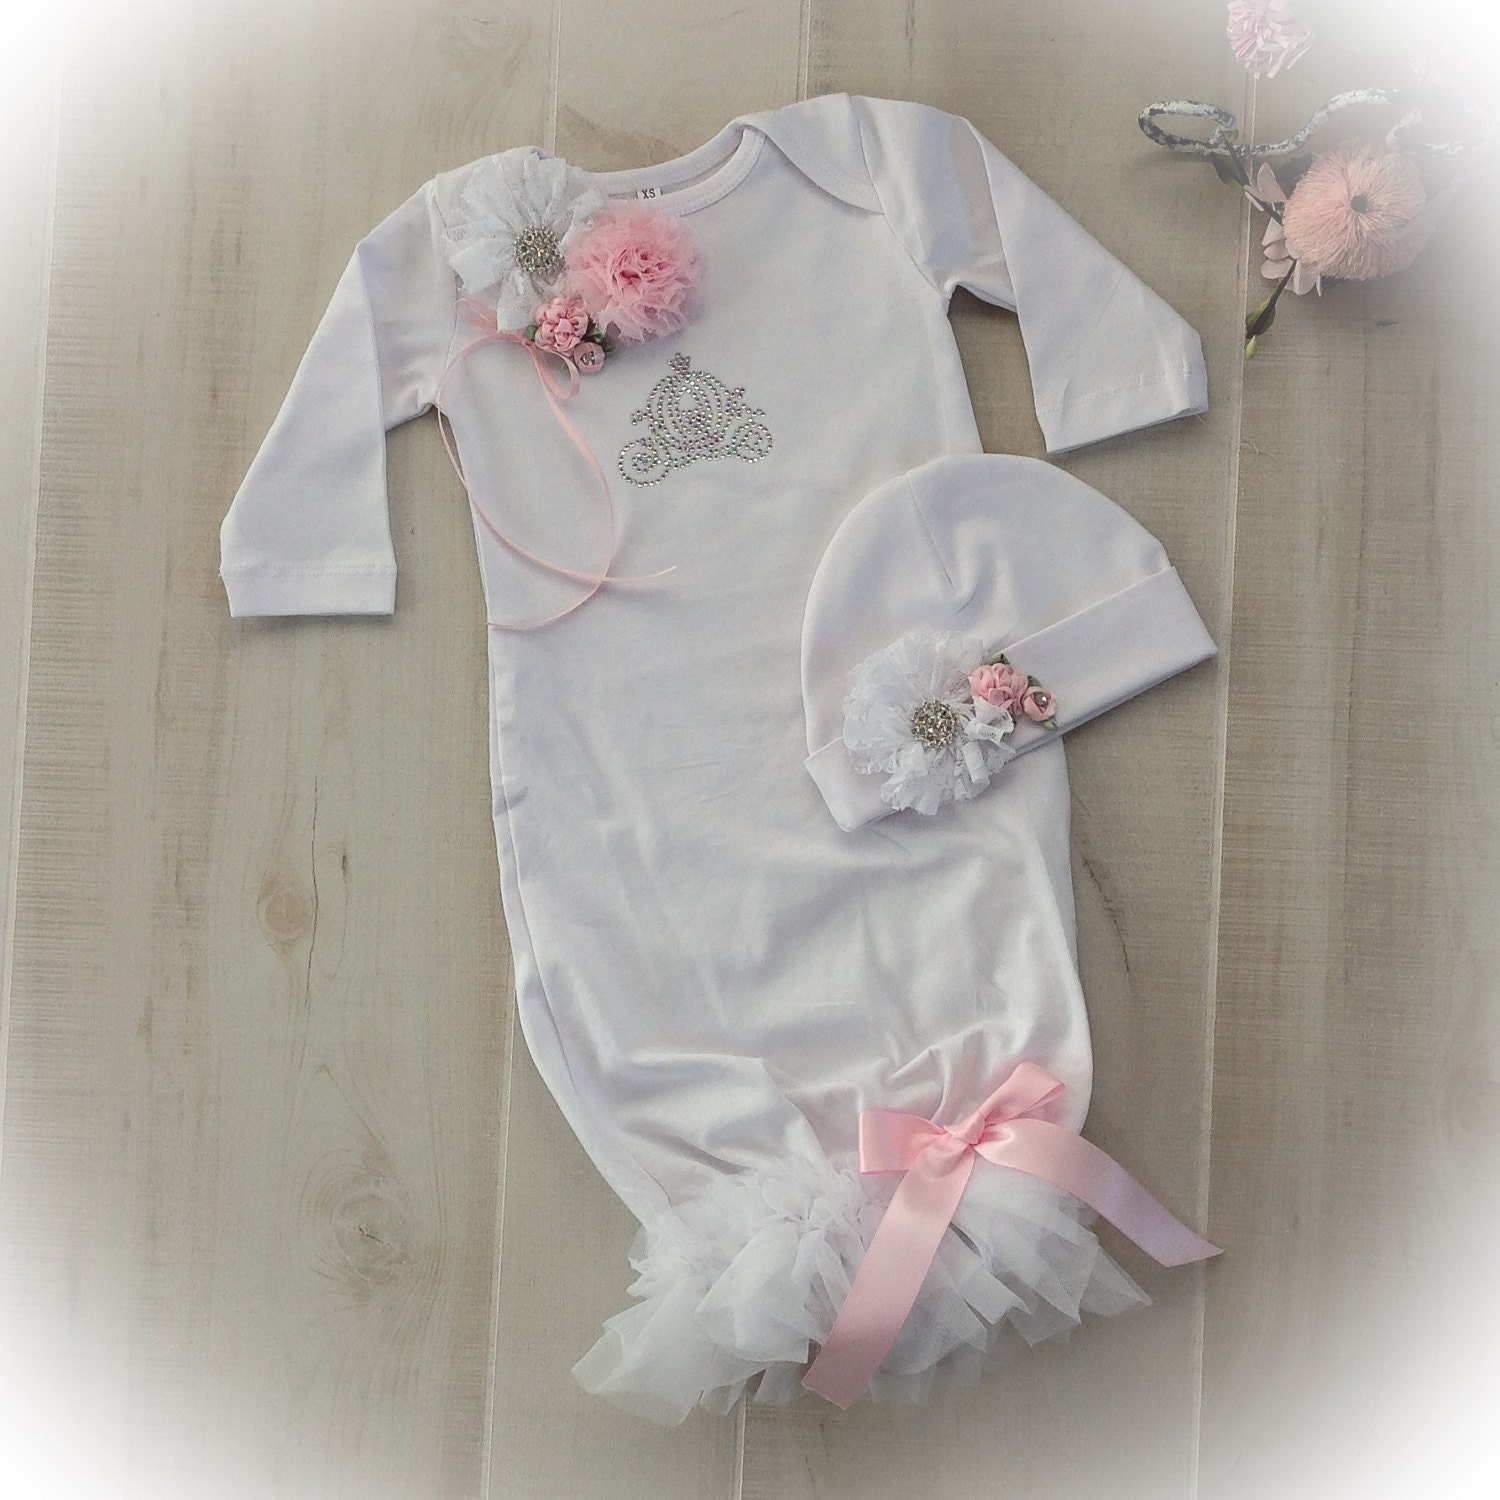 theposhlayette Infant Newborn Baby Girl Coming Home Outfit Layette Gown with Headband Newborn (Pink/Gray) by theposhlayette. $ $ 24 99 Prime. FREE Shipping on eligible orders. theposhlayette Newborn Baby Girl Coming Home Outfit Personalized Layette Gown with Beanie Baby Girl Shower Gifts (White/Pink) by theposhlayette. $ $ 25